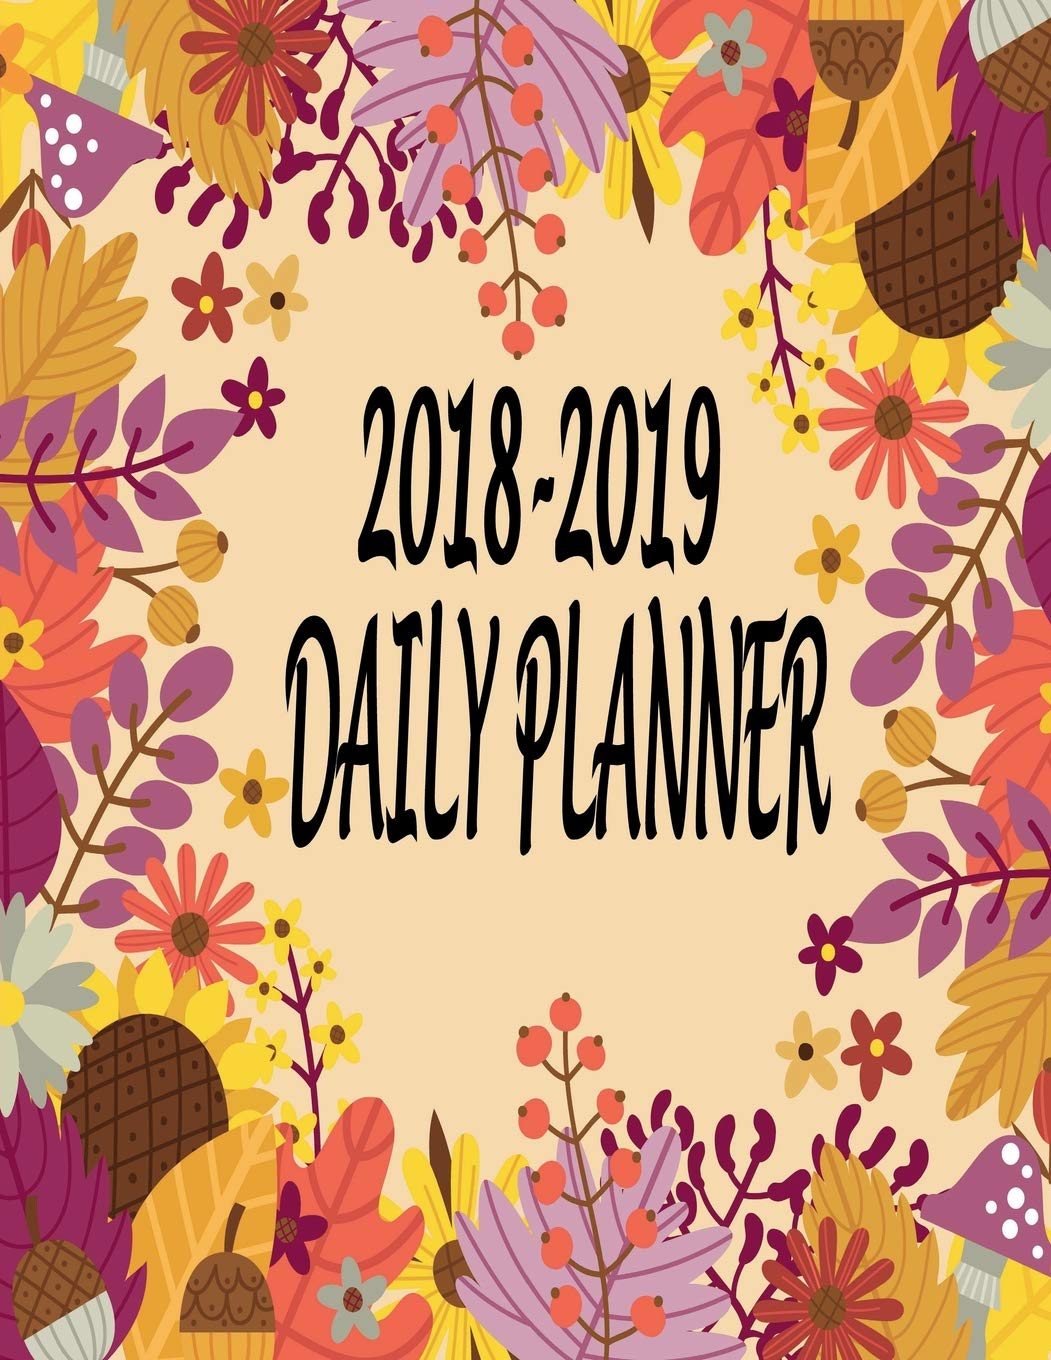 Download 2018 - 2019 Daily Planner: 2018 - 2019 Daily Planner Weekly And Monthly Academic Planner for Activity Schedule Organizer and Inspirational Quotes with Journal Notebook (August 2018 - December 2019) pdf epub